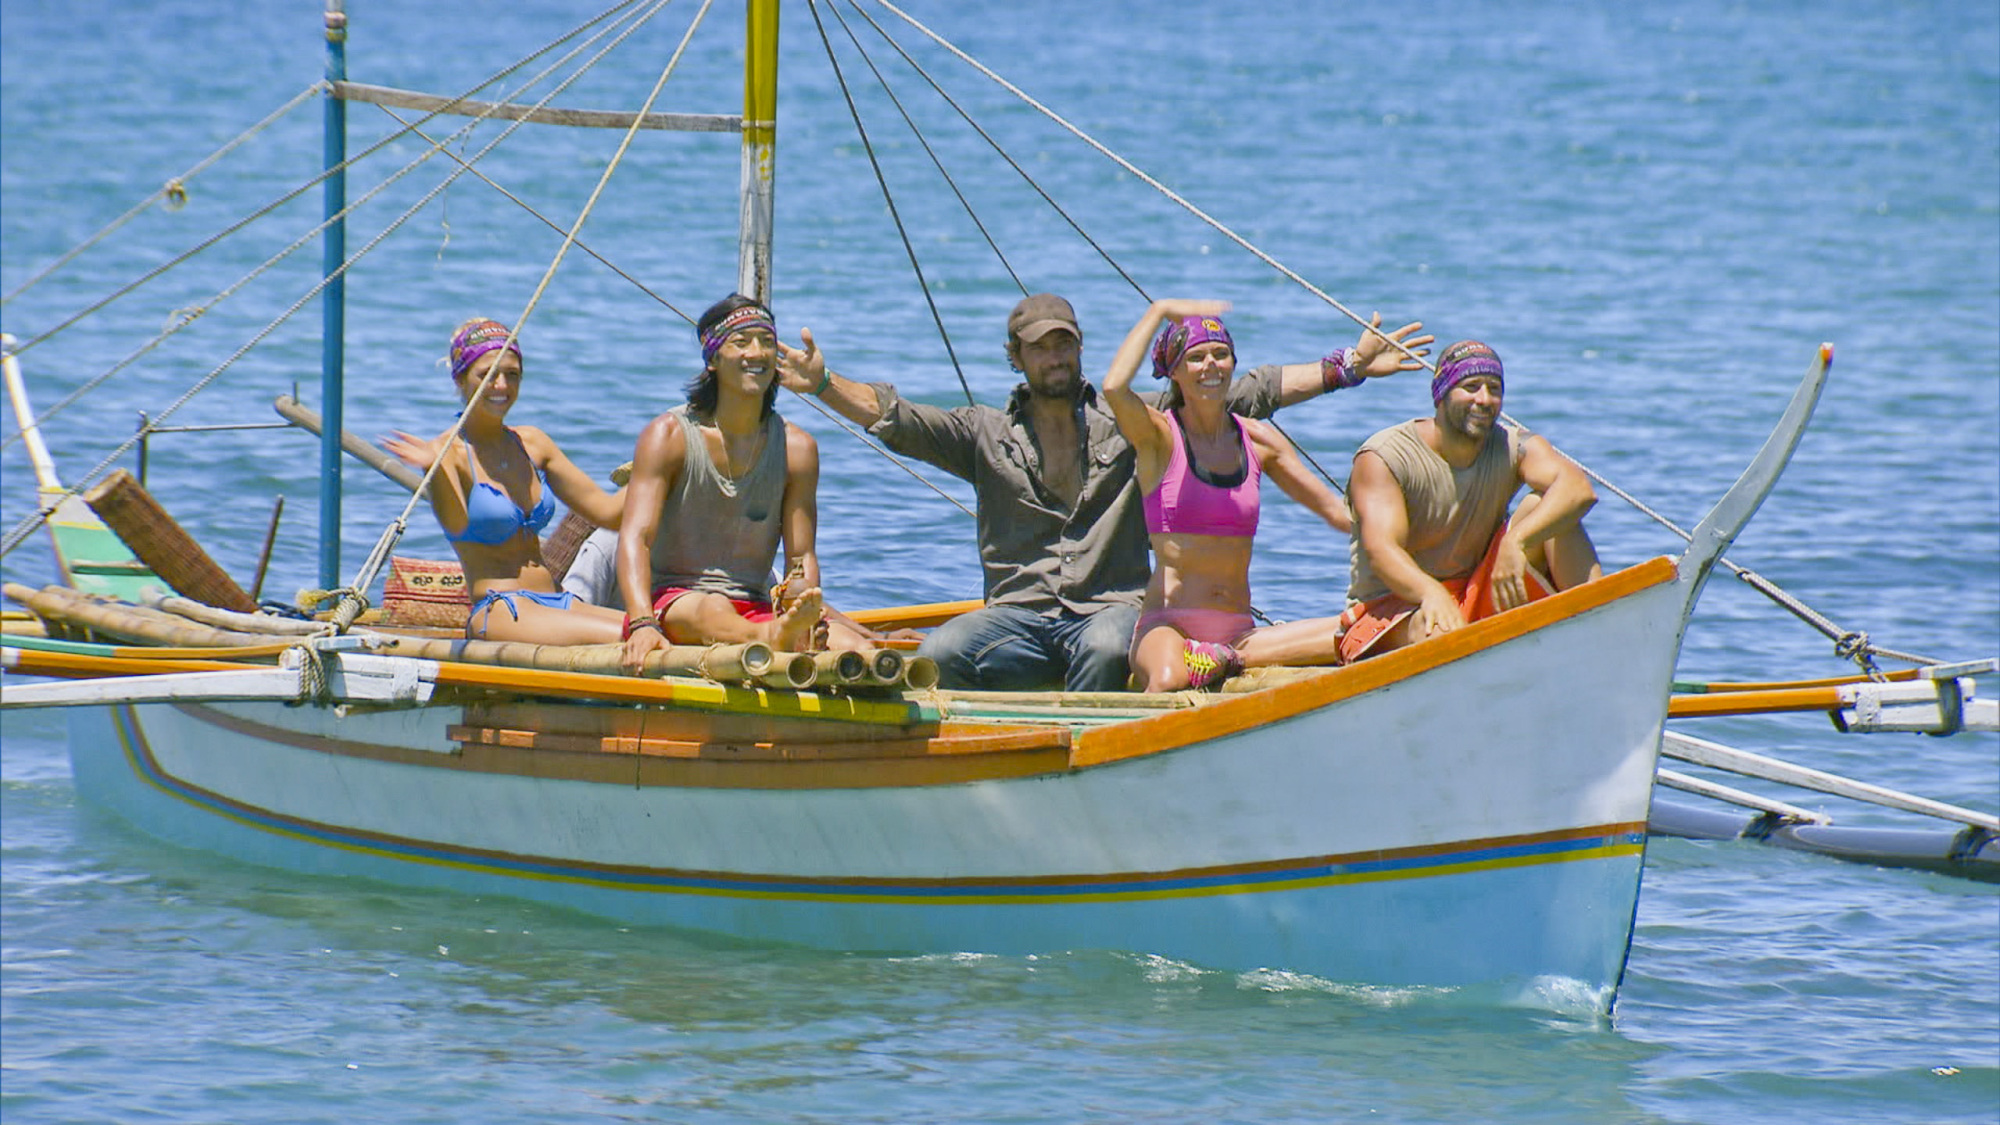 On a boat in Season 28 Episode 6